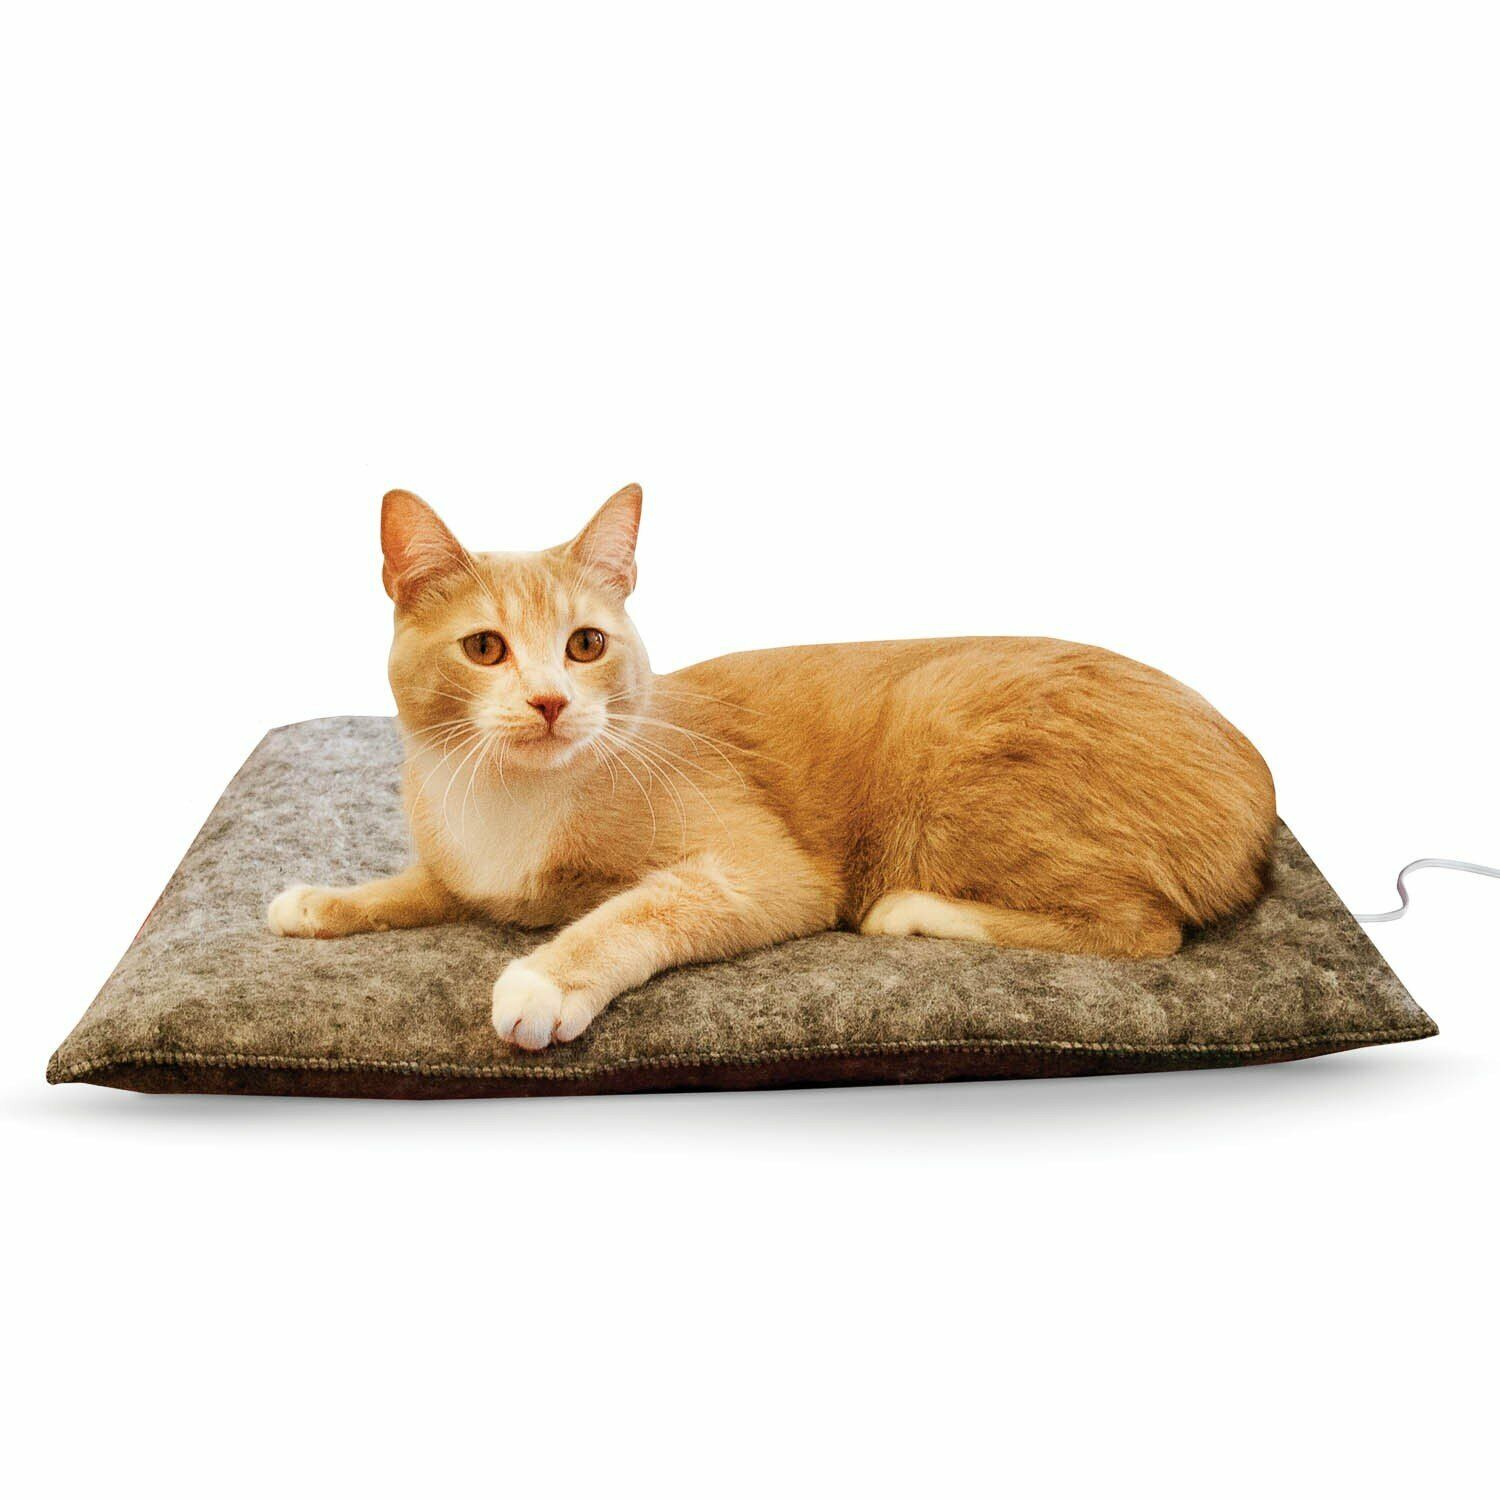 kh-amazin-thermo-kitty-pad-indoor-heated-kitty-cat-bed-pad-gray-15-x-20